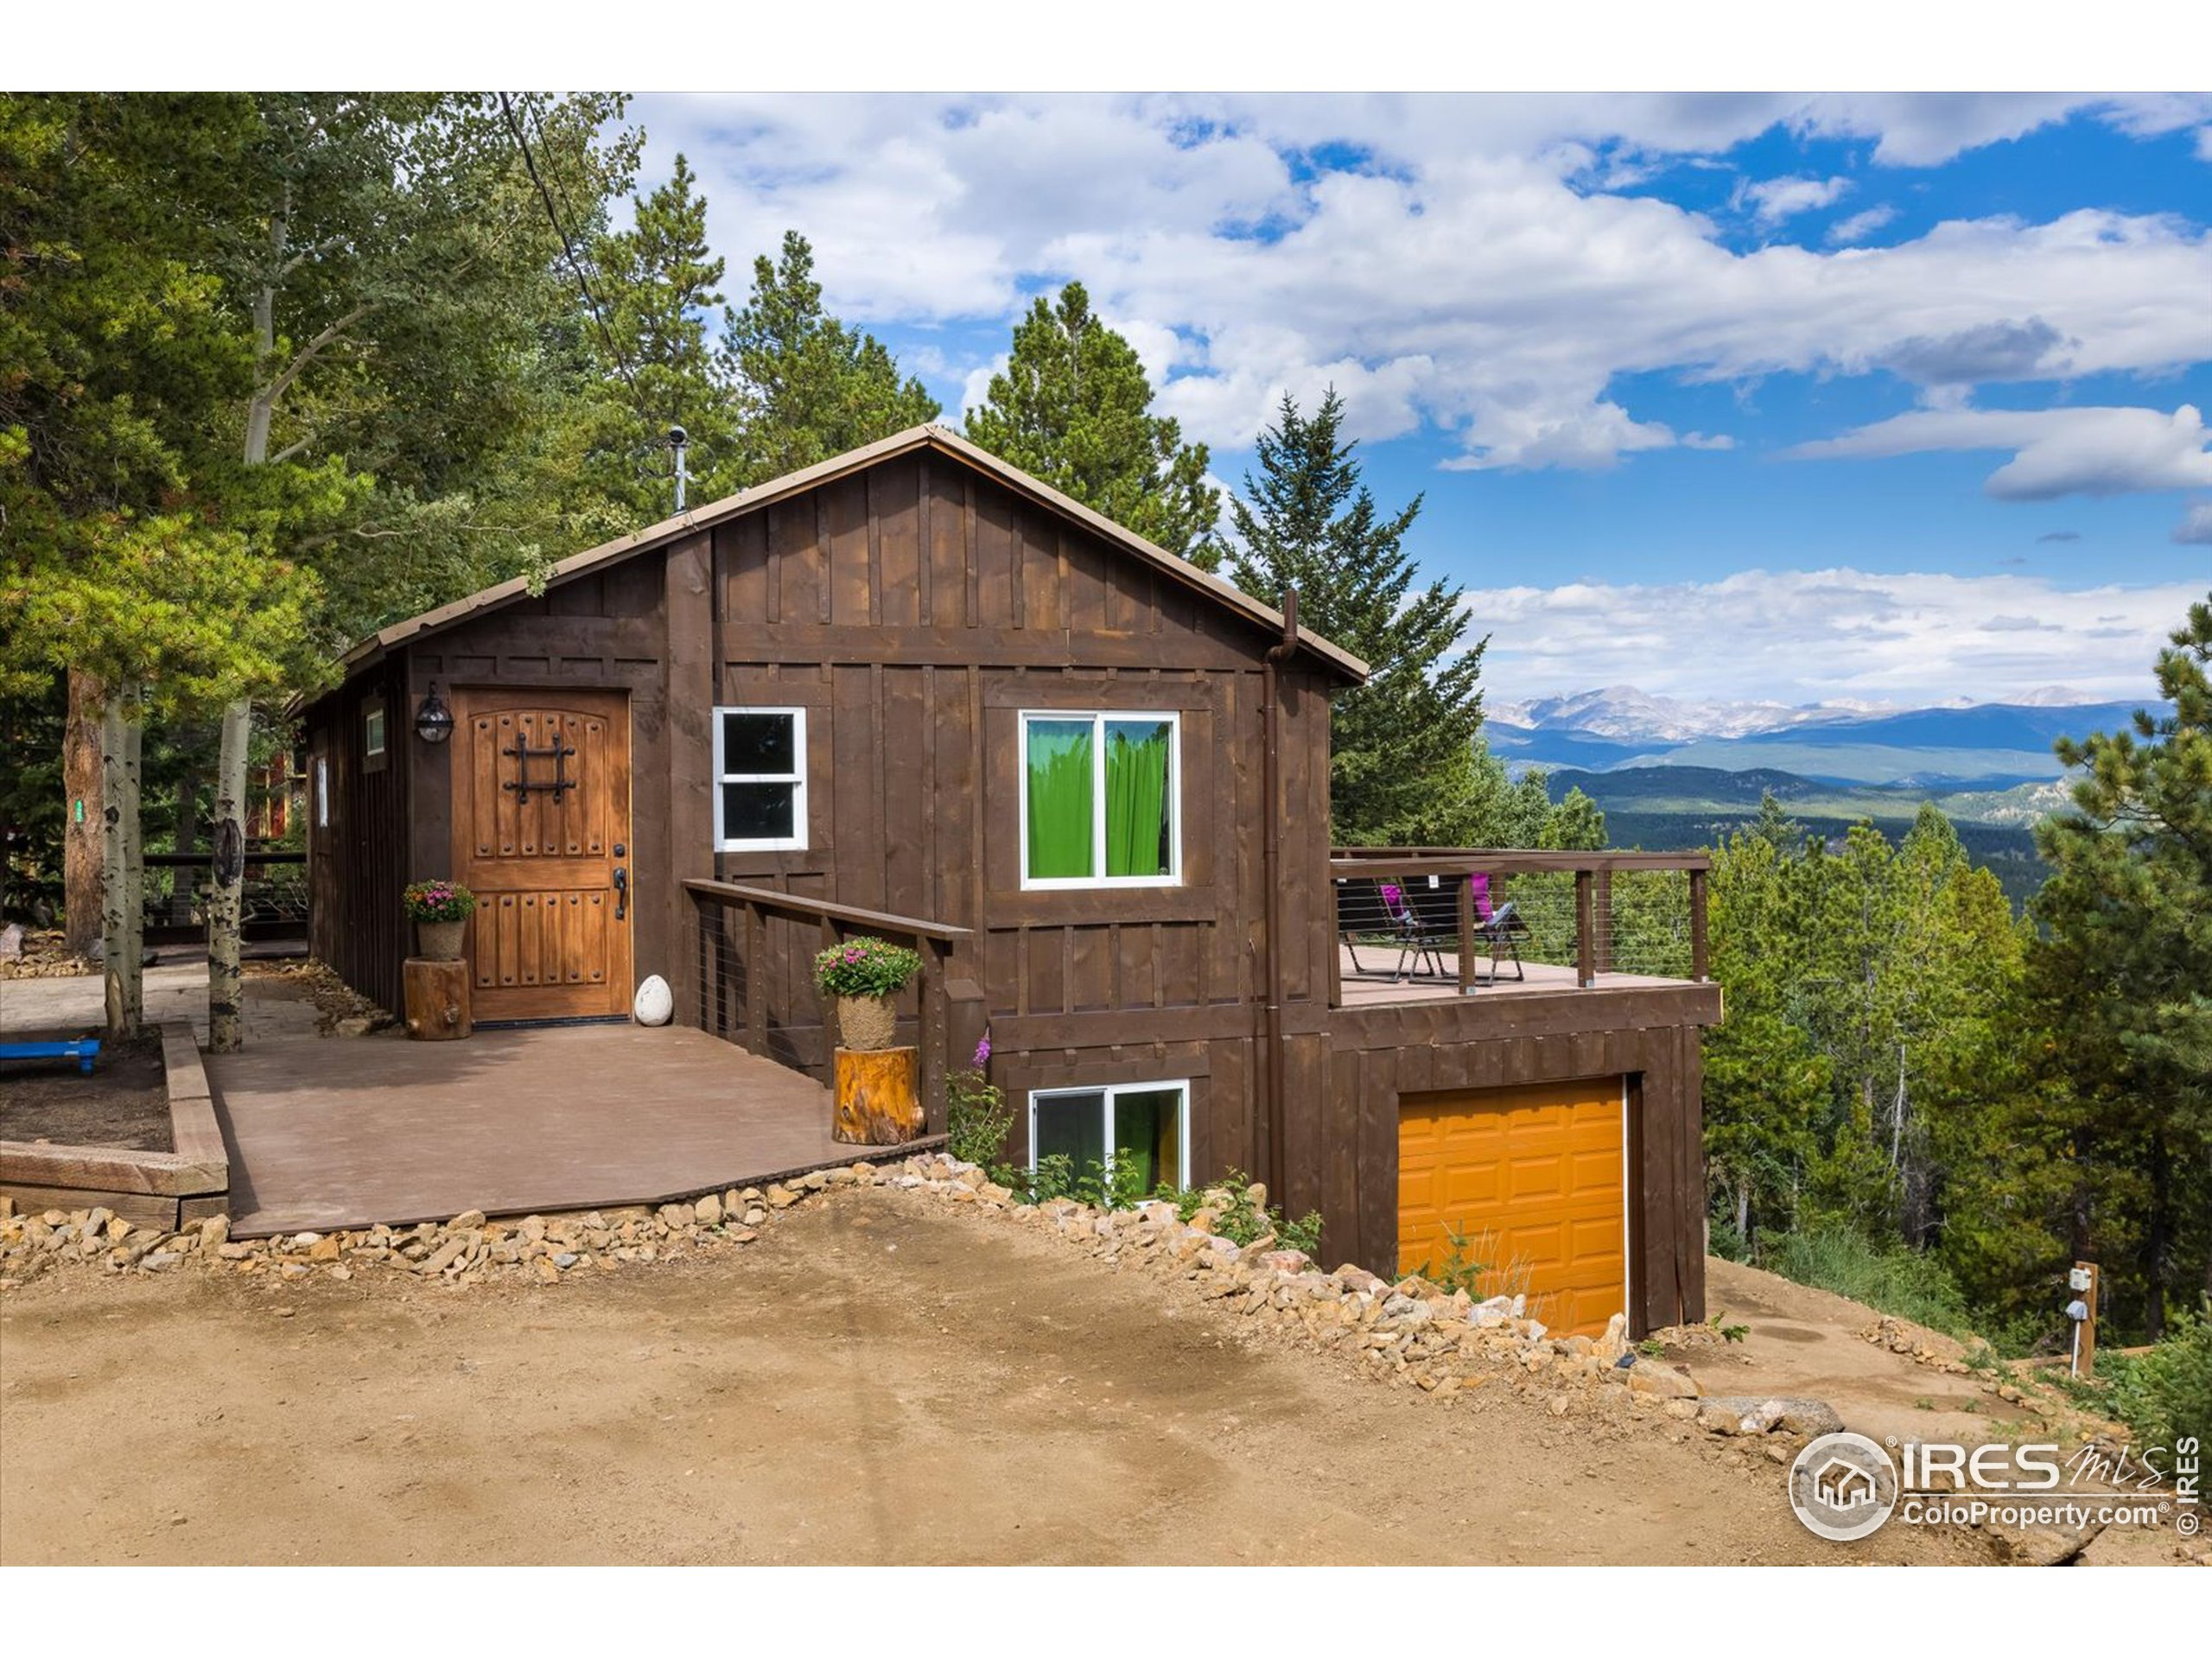 Stunning luxurious mtn home has been completely & thoughtfully remodeled w/ designer finishes, where every inch of space is used effectively, including the spacious back deck to enjoy jaw dropping views! Location doesn't get any better w/unobstructed snowcapped mtn views, close access to Nat'l Forest, trails & Echo Rock out your backdoor.  Open flr plan w/ built-in Arhaus kitchen, Bosch fridge, wd stove, beautiful wd flrs & locally milled wd ceilings. Walk-out lower lev includes mstr bdrm w/ built-ins, lux 5-pc bath w/ lg soaking tub, glass enclosed shower, 2 sink areas, beautiful stone/tile work. Laundry & access to 1car garage (could be converted to 2nd bedrm). Tranquil & serene yard lives lg w/new landscaping including 52000 lbs of stone, flowerbeds, patio, privacy fences, walkways leading to many seating areas. New ext railings, retaining walls. High speed internet & relaxing atmosphere allow for an ideal work & play from home situation! Easy commute Boulder/Denver, Eldora Ski Area